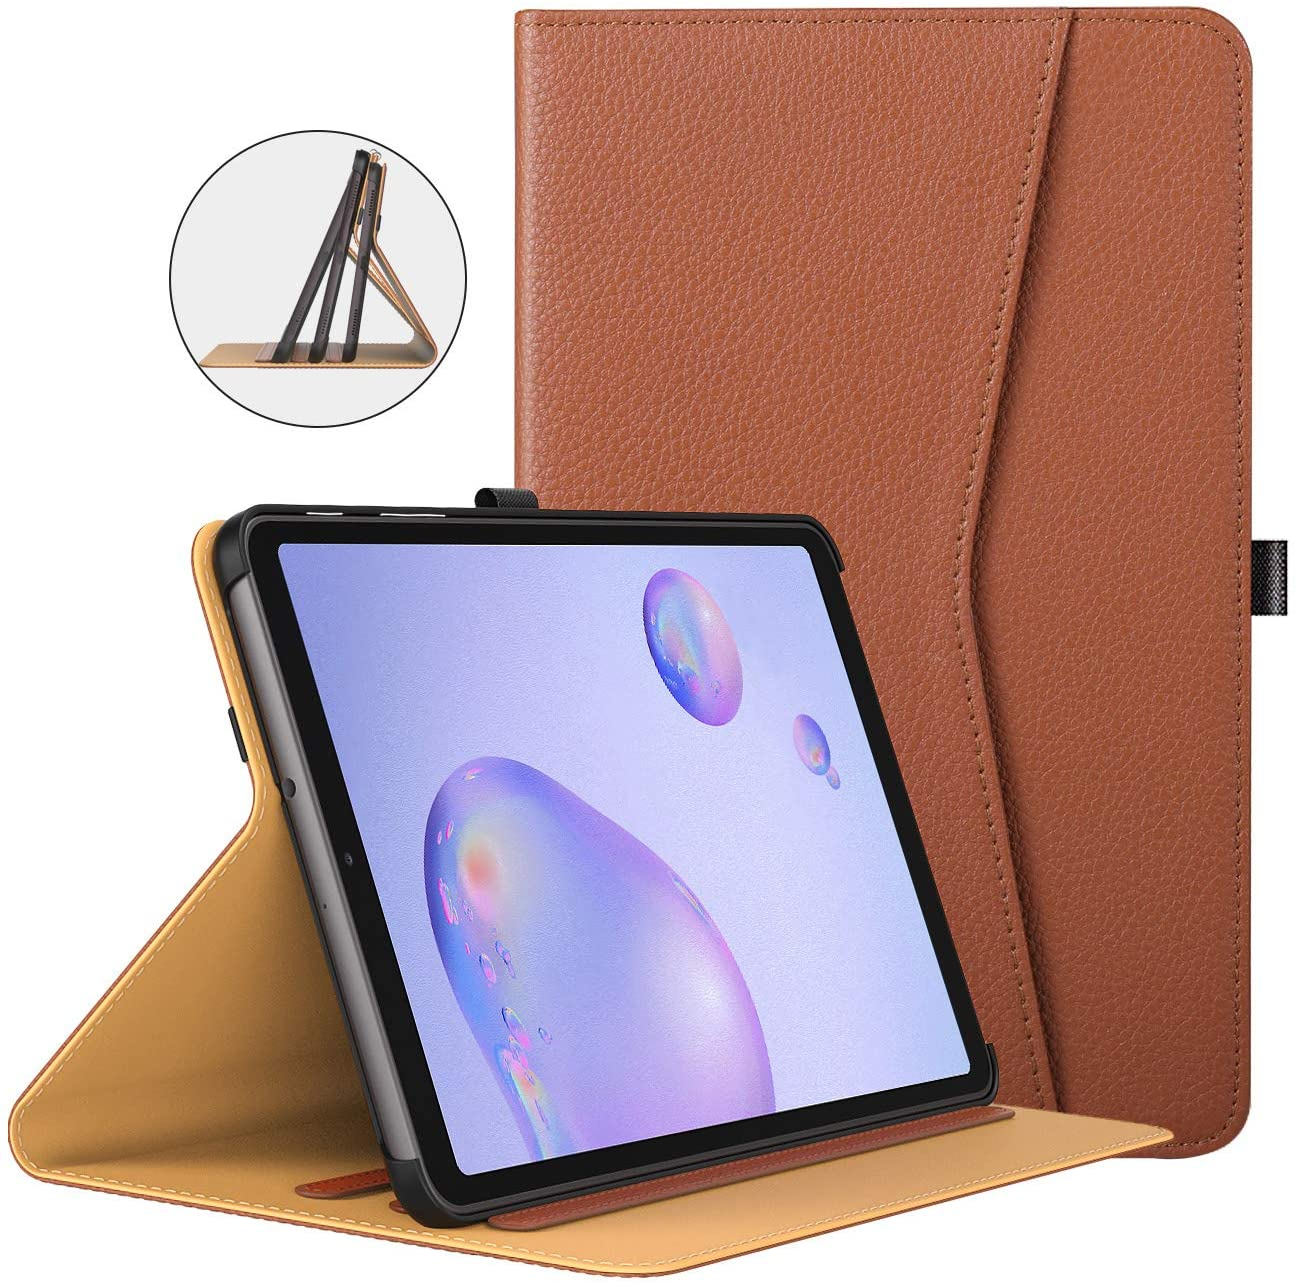 TiMOVO Case for All-New Samsung Galaxy Tab A 8.4 Inch 2020 Release Model SM-T307, Multiple Viewing Angles Folding Folio Stand Cover Pocket Case Fit Galaxy Tab A 8.4 2020 Tablet - Brown